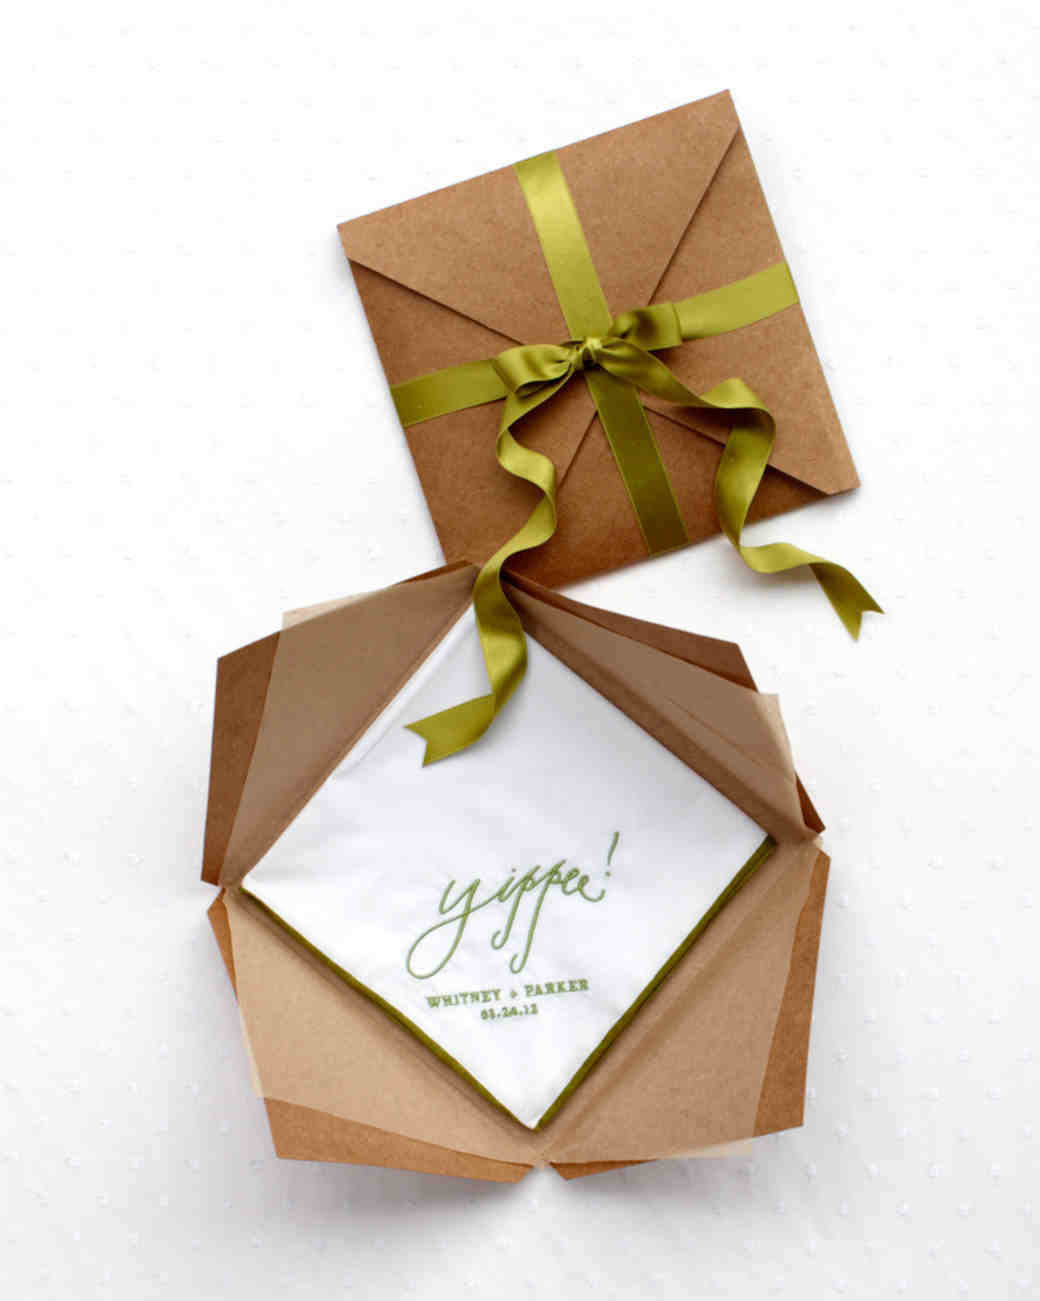 13 DIY Wedding Favor Ideas for a Spring Celebration | Martha Stewart ...